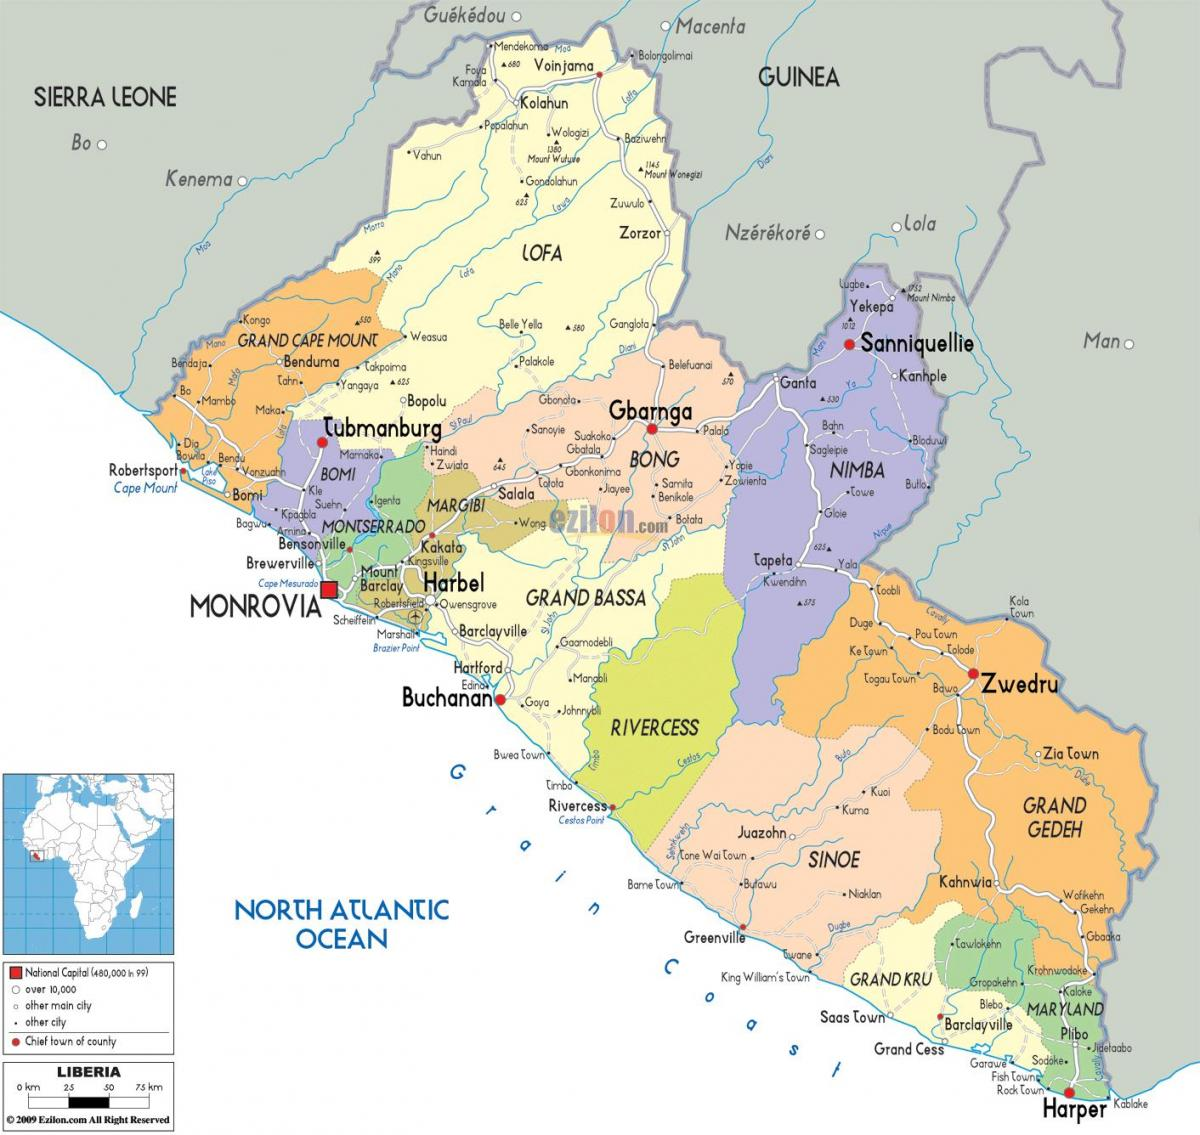 the political map of Liberia